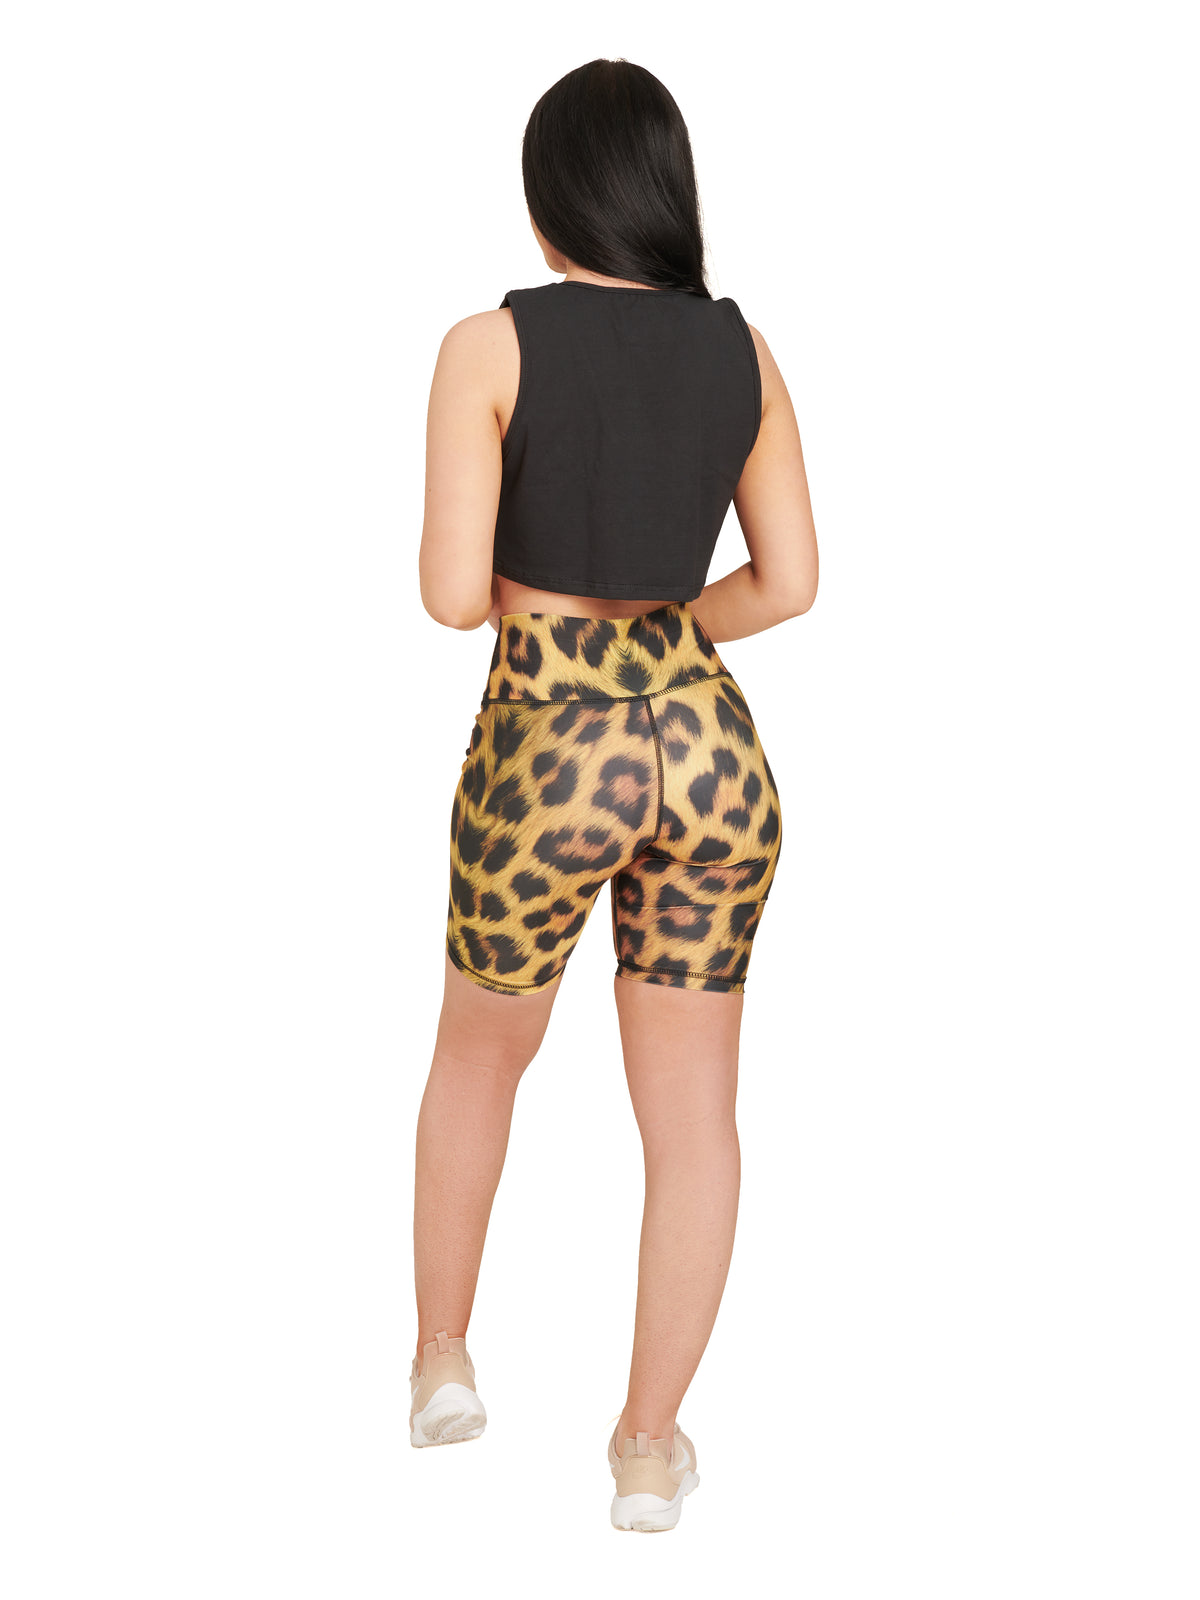 SALE - Bicycle Shorts / Cheetah